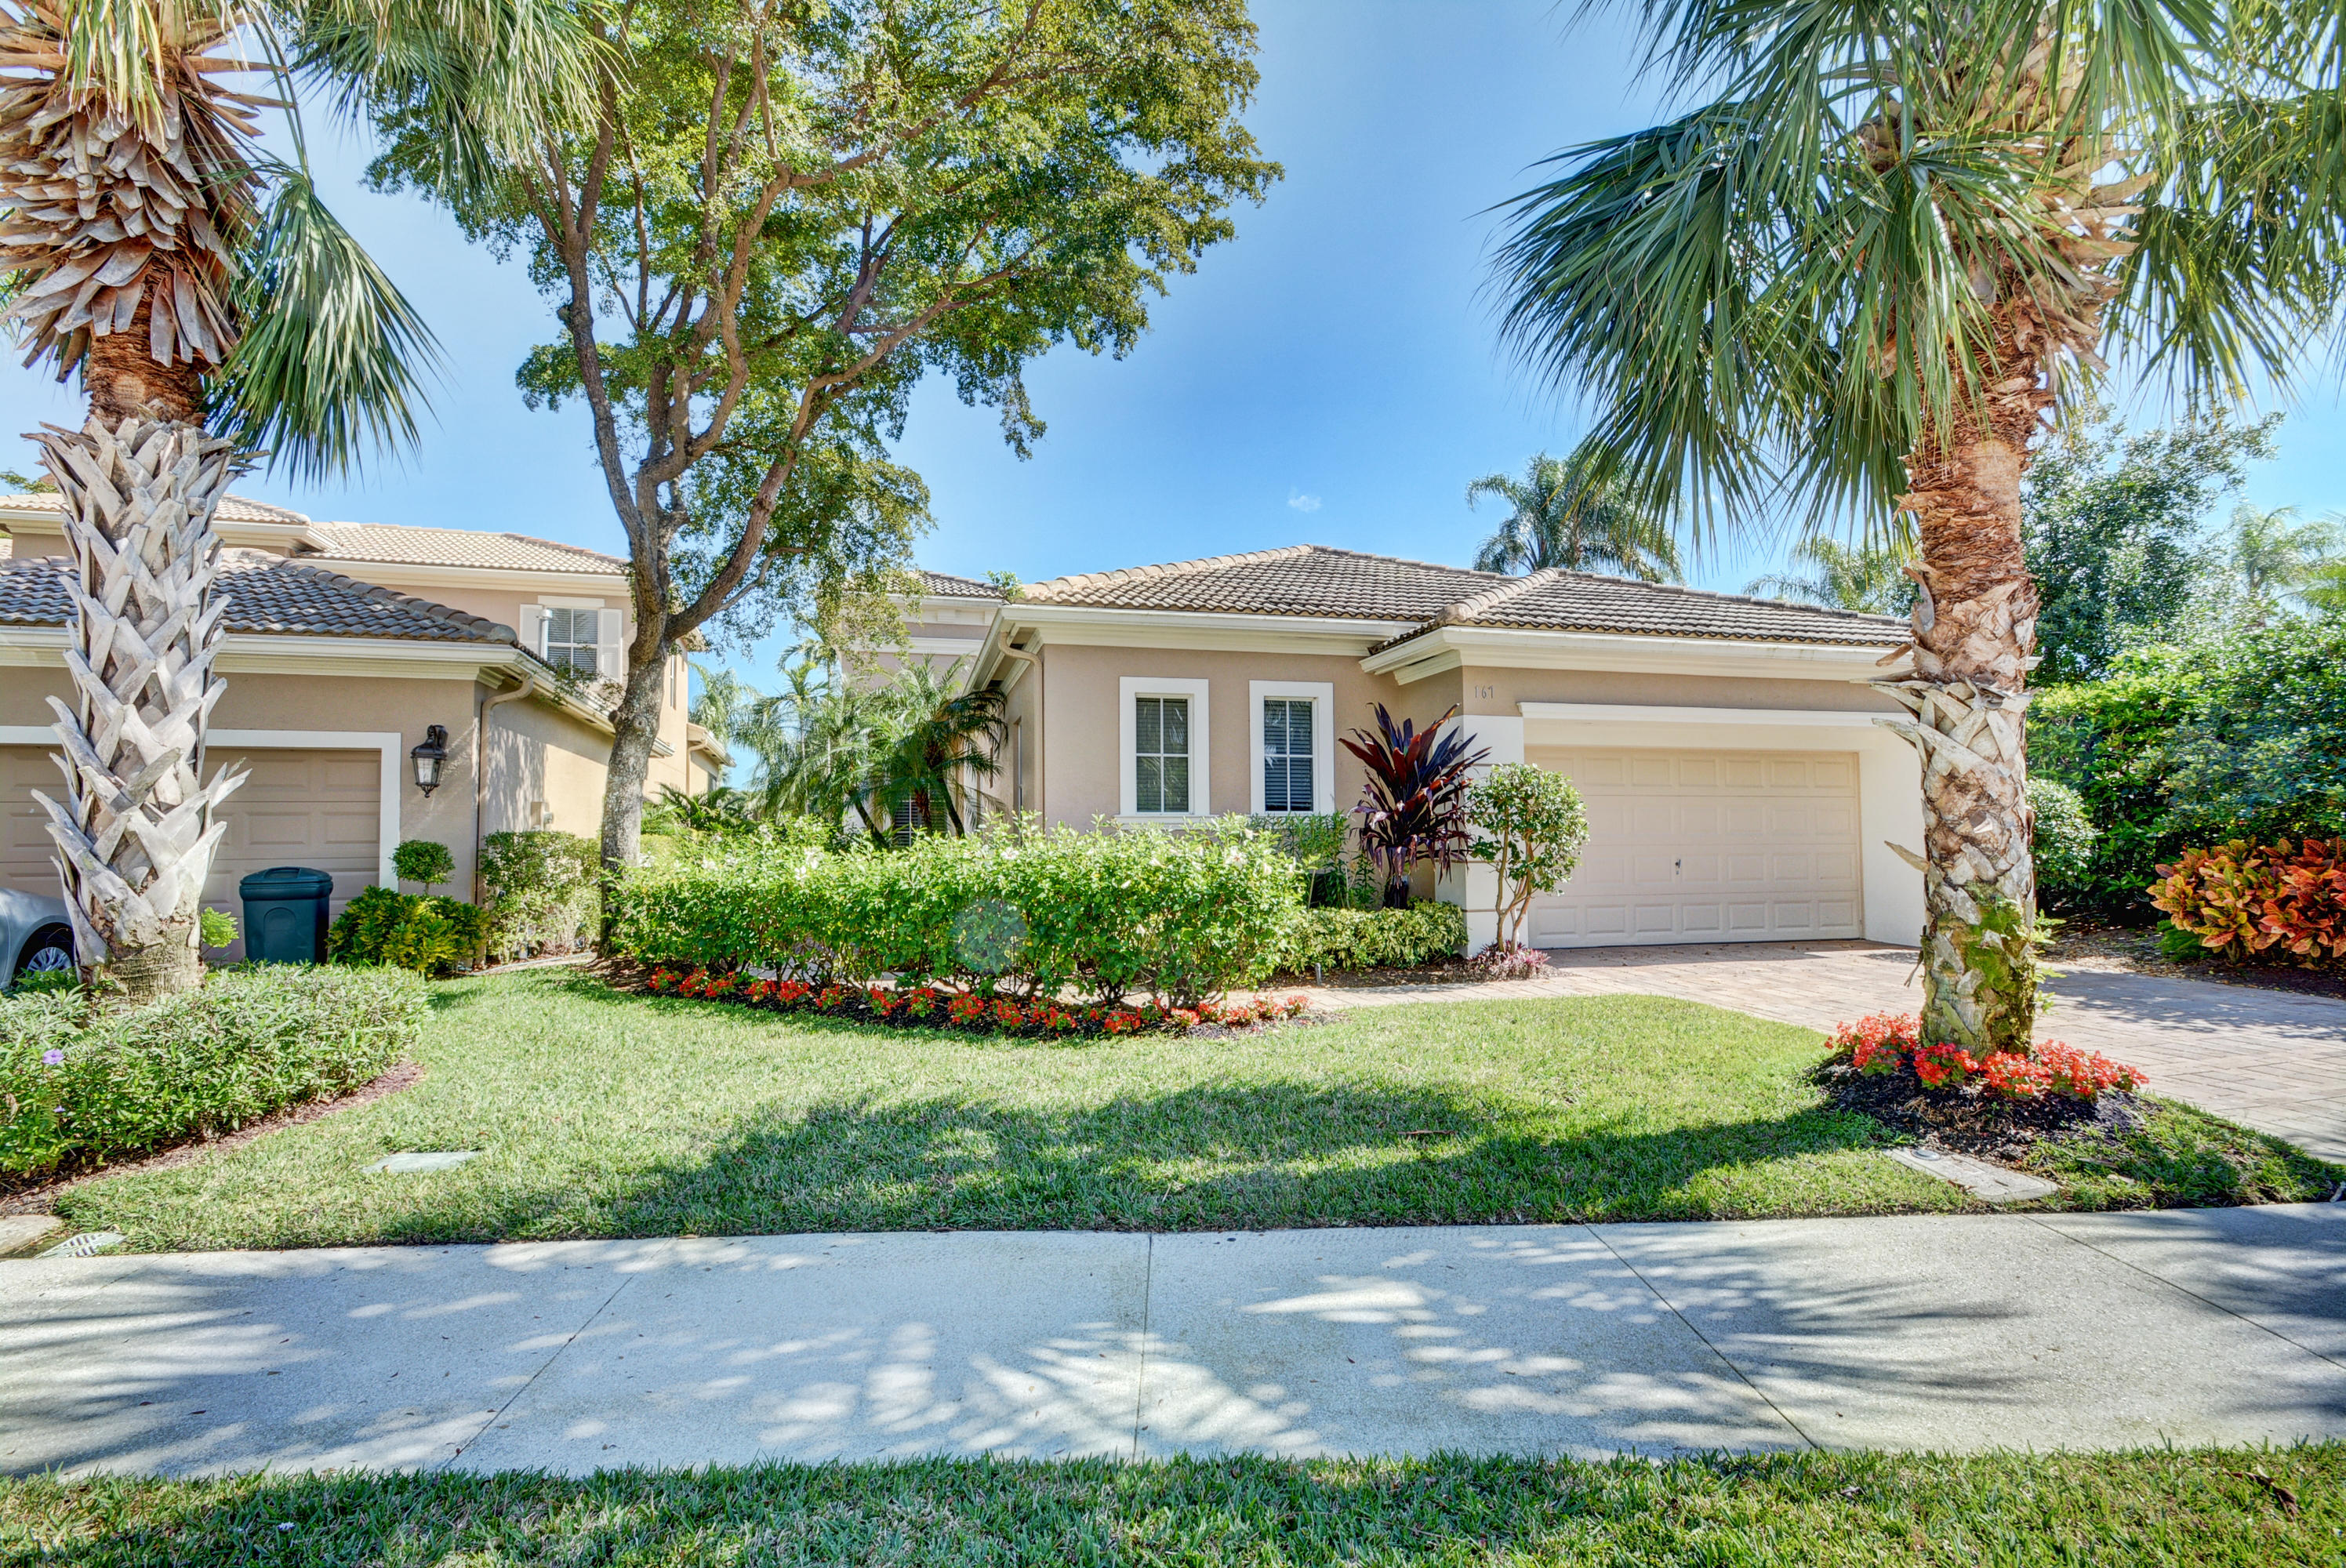 167 Orchid Cay Drive, Palm Beach Gardens, Florida 33418, 3 Bedrooms Bedrooms, ,4 BathroomsBathrooms,F,Single family,Orchid Cay,RX-10418402